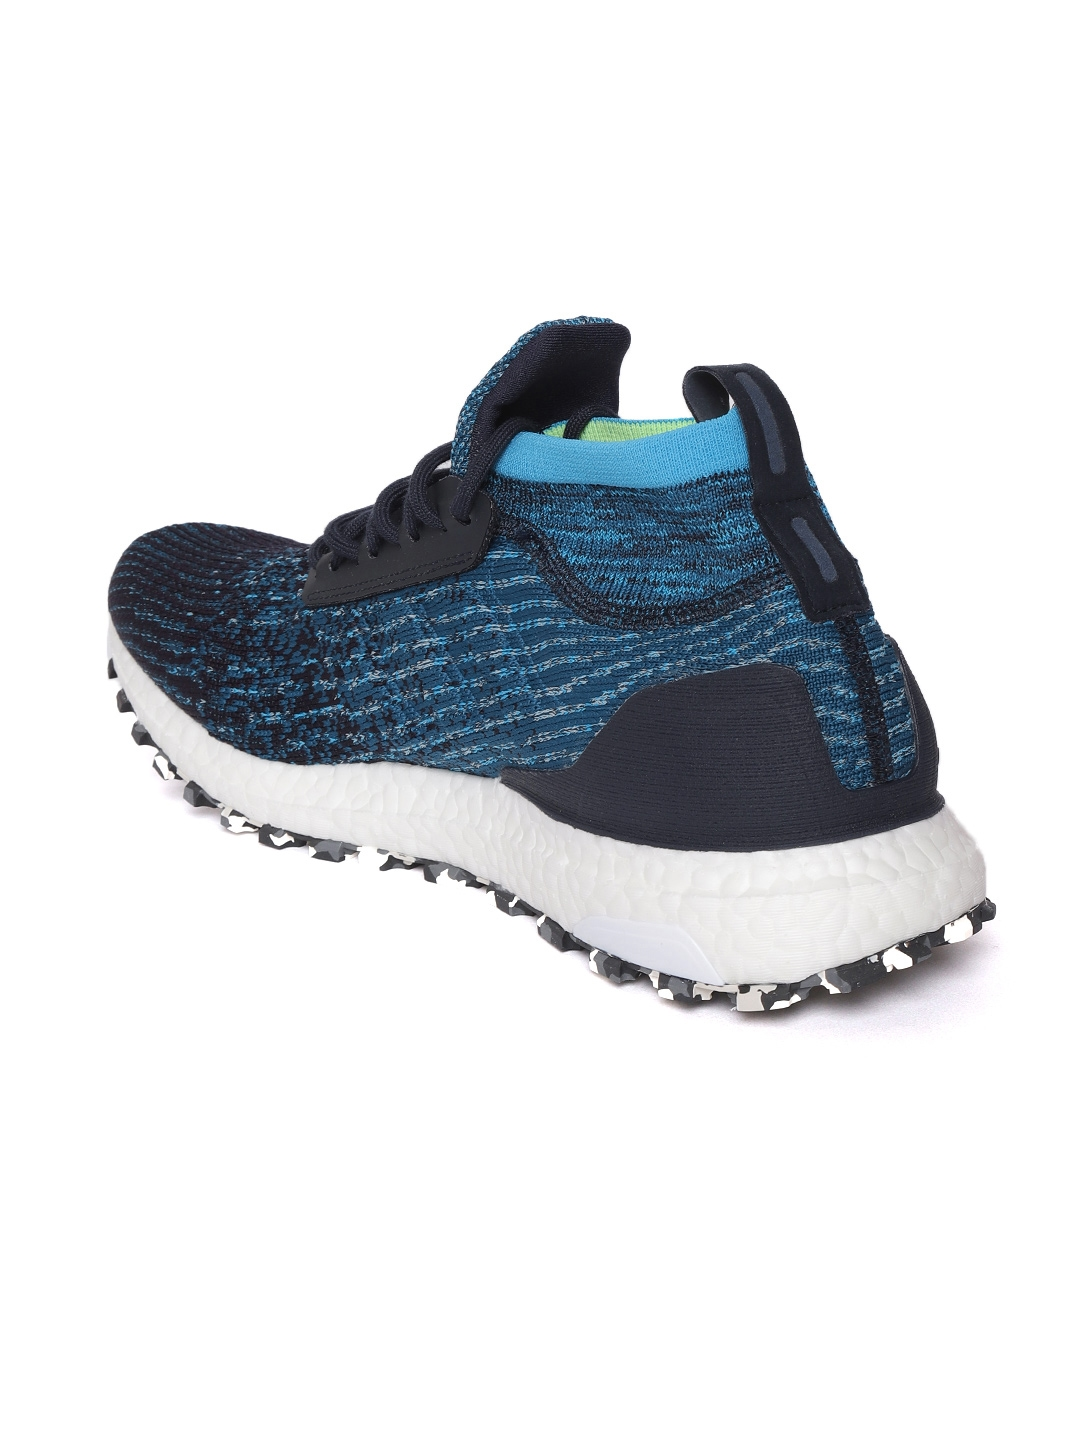 Buy Sports Running Terrain Adidas Men Ultraboost All Blue Shoes 4ARLqc5jS3